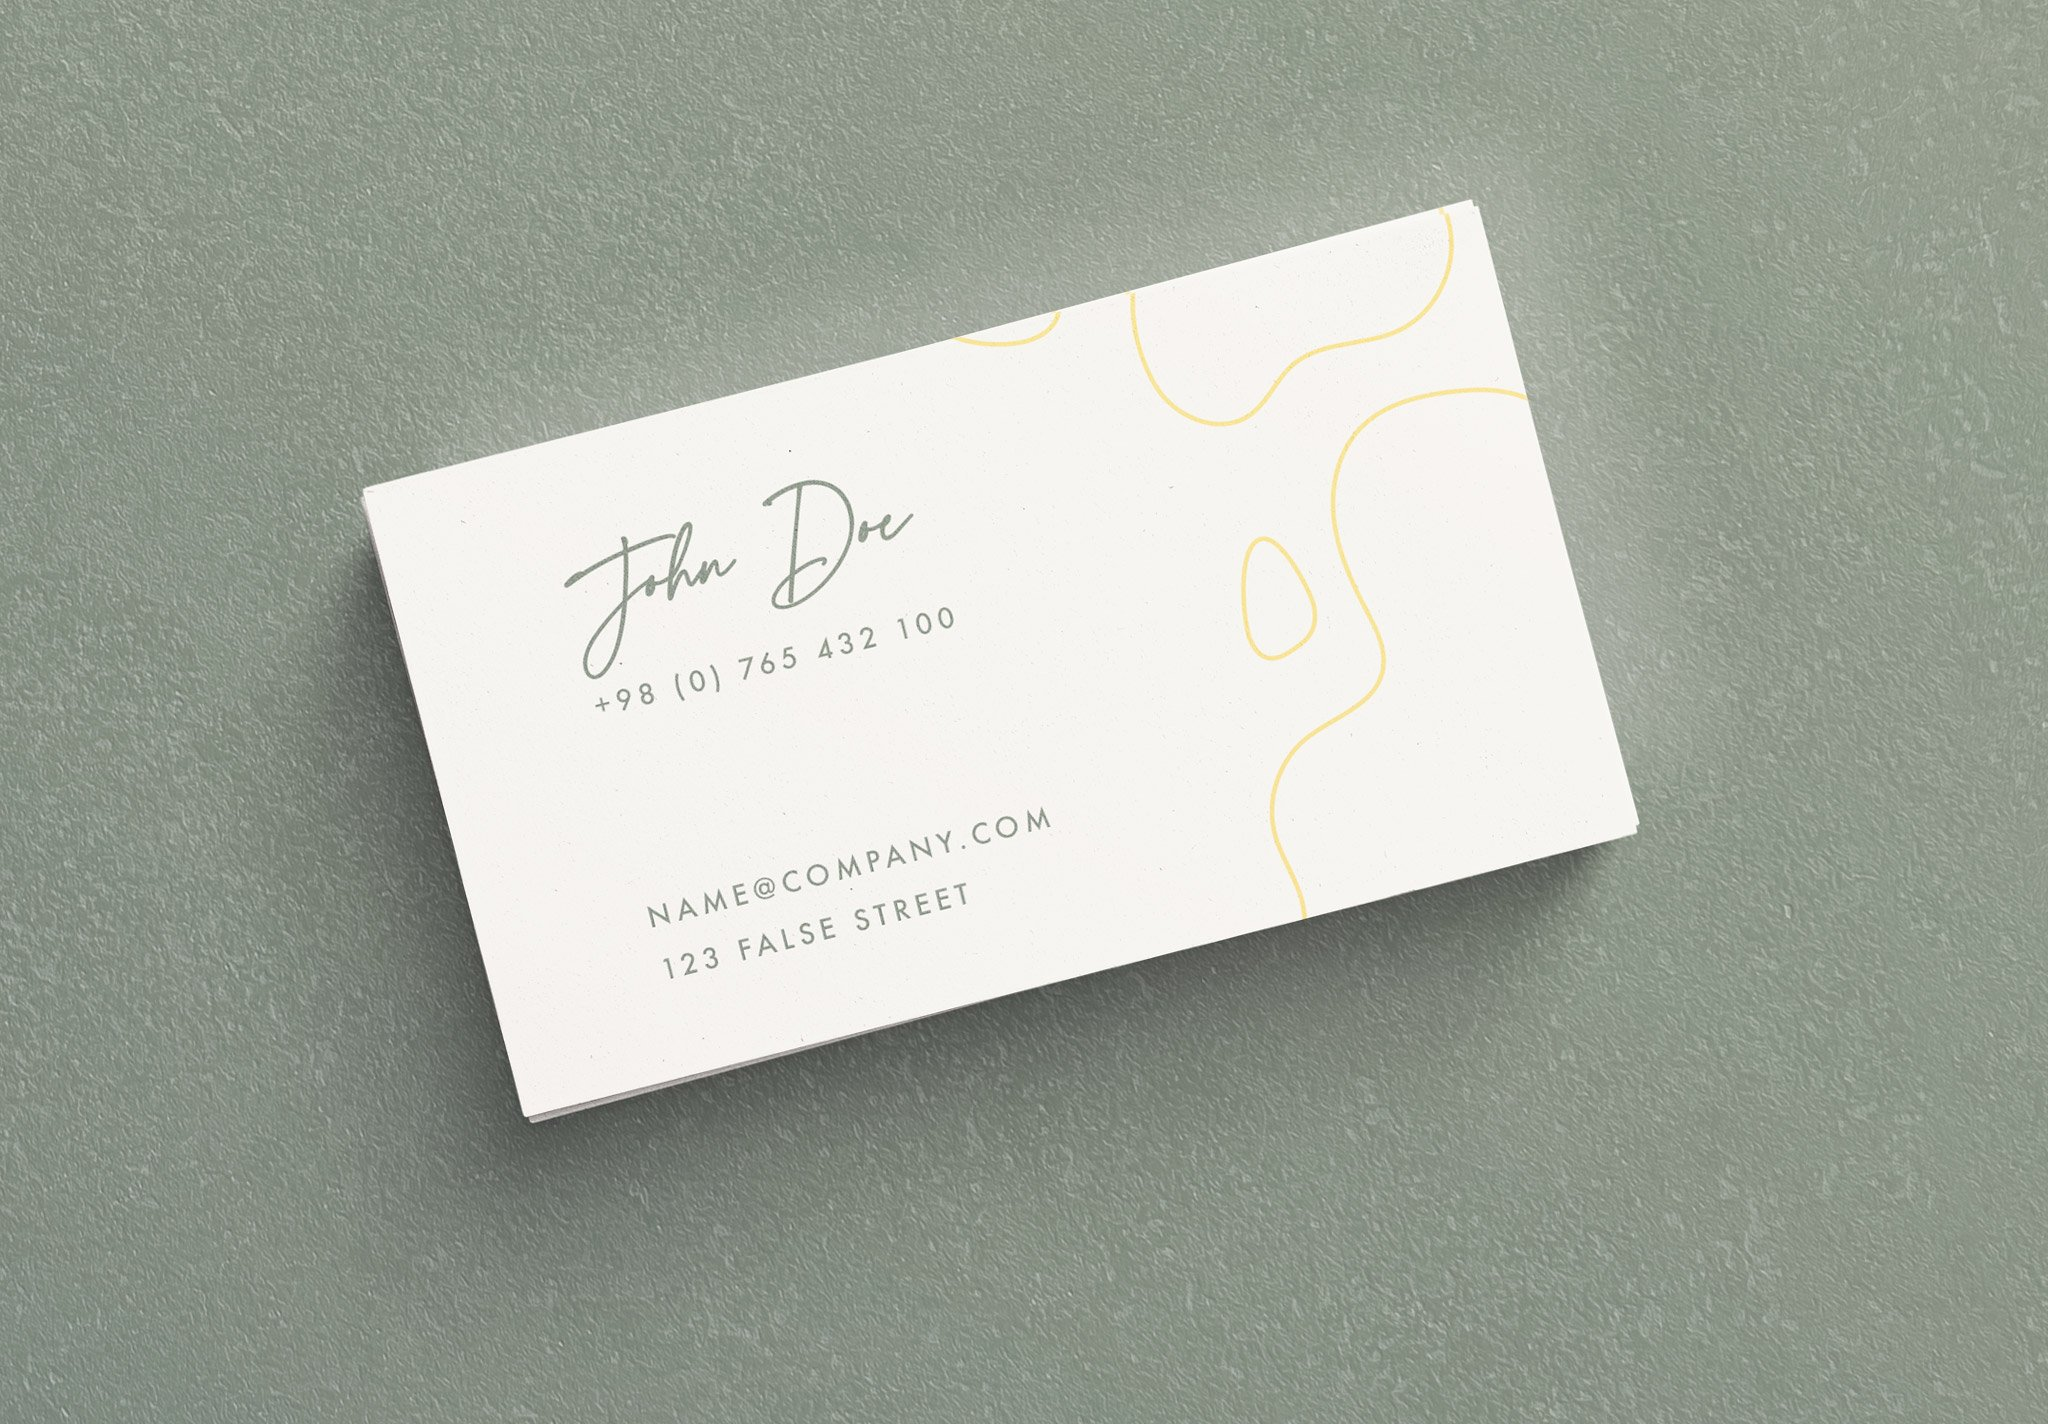 business cards layout 2 image04